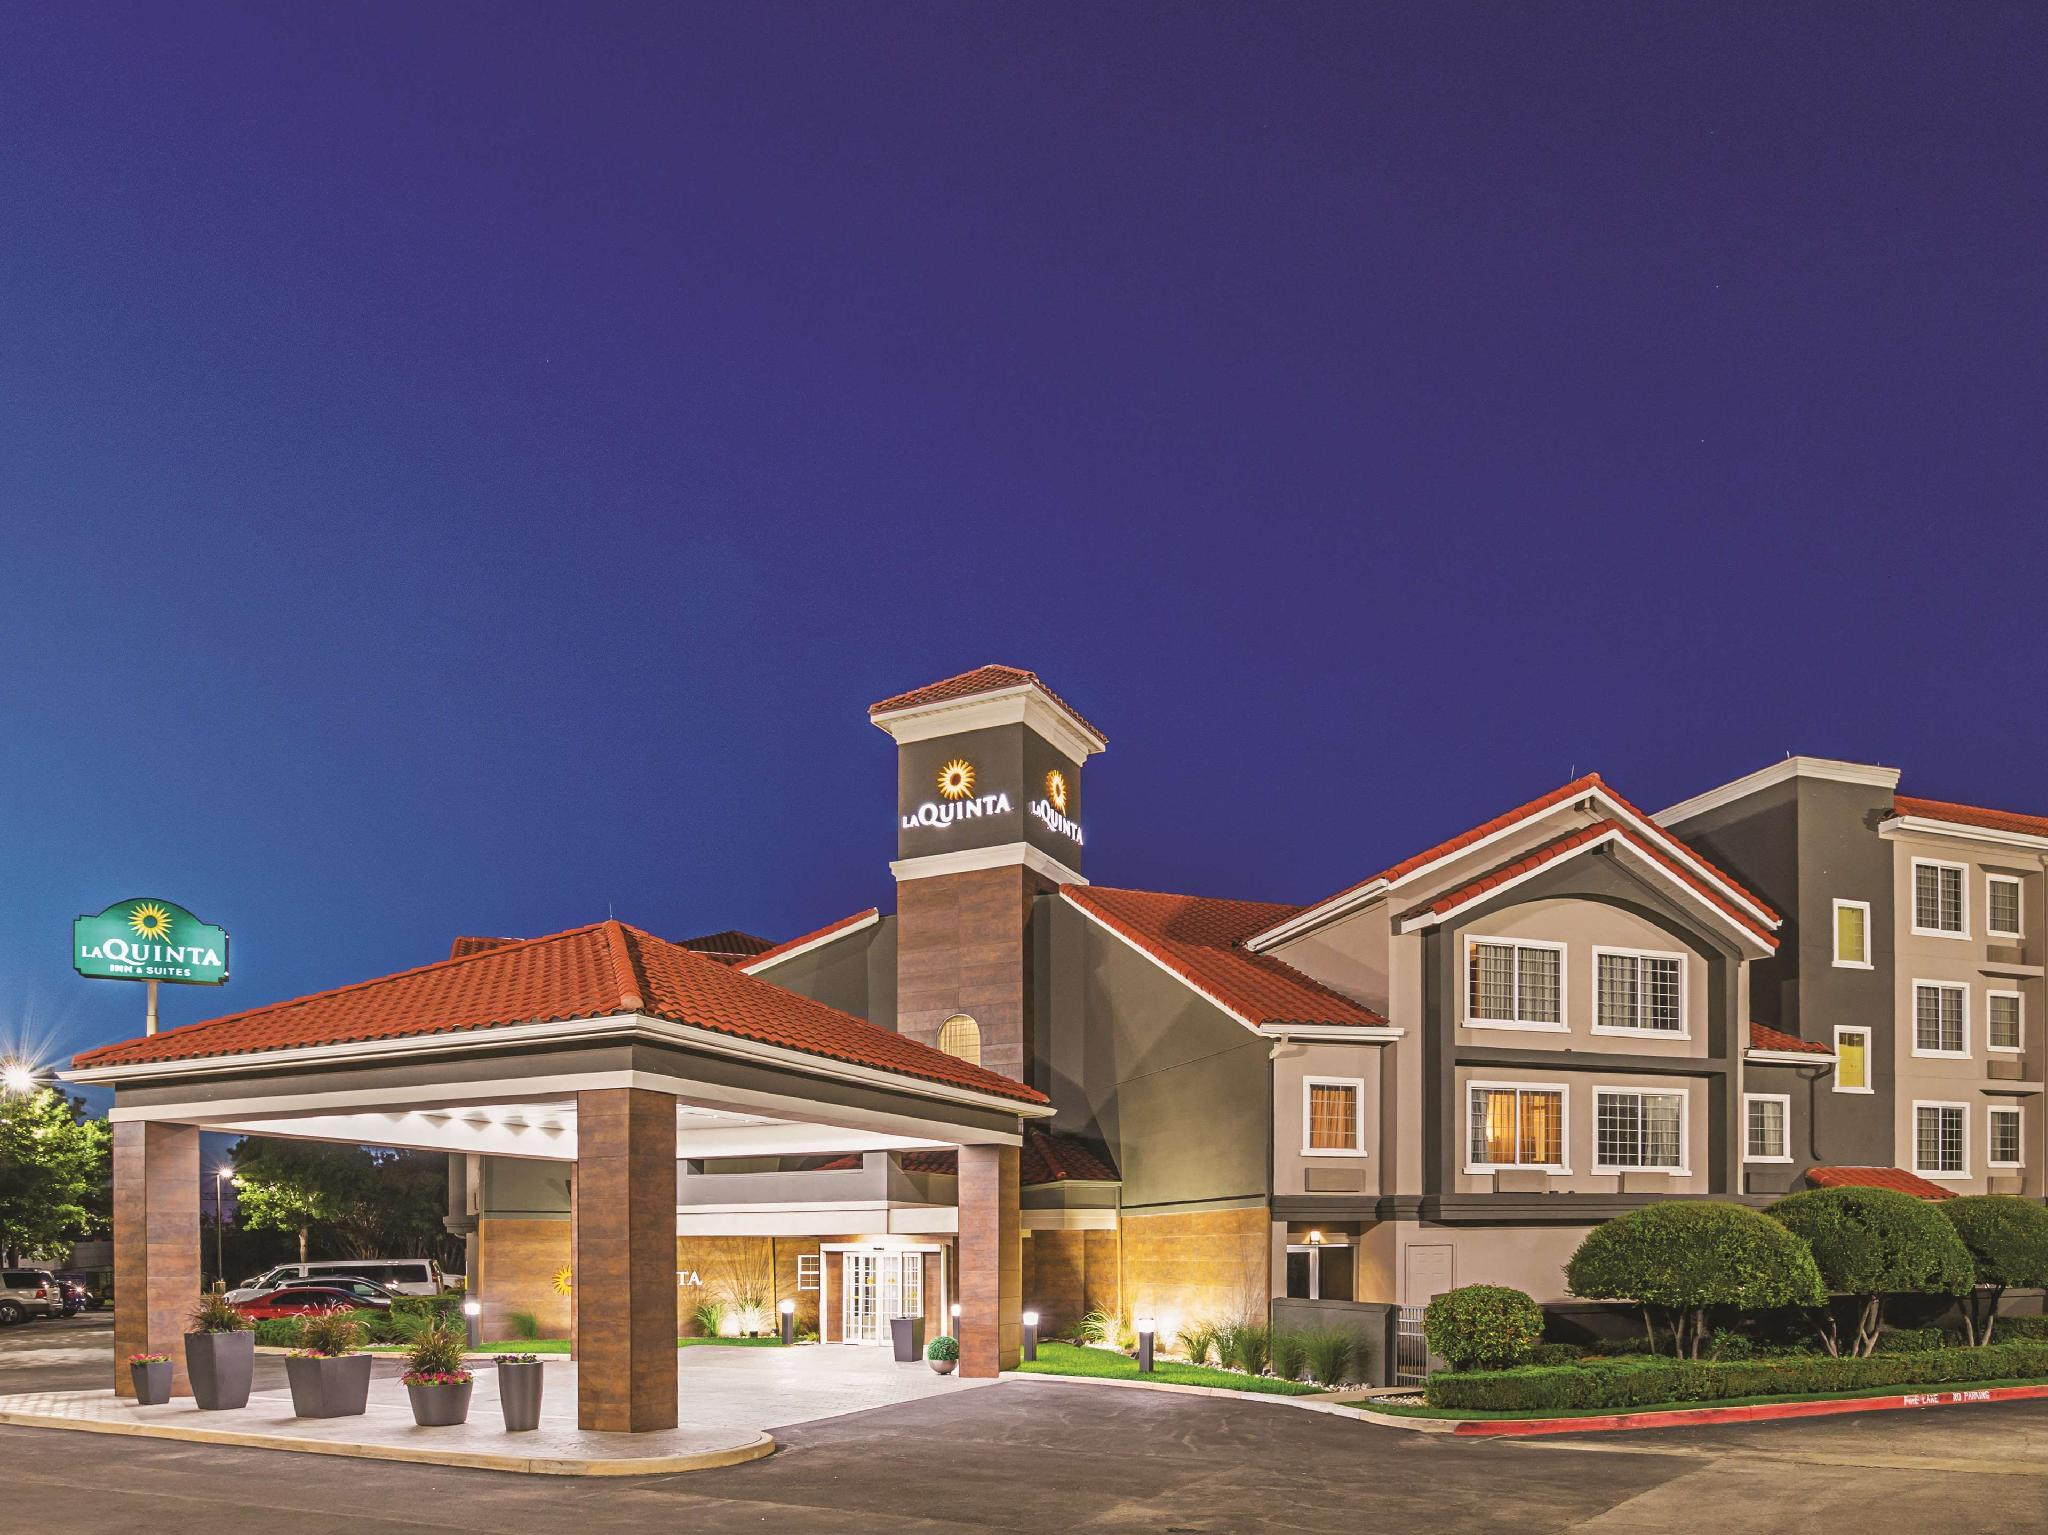 La Quinta Inn And Suites By Wyndham Fort Worth North